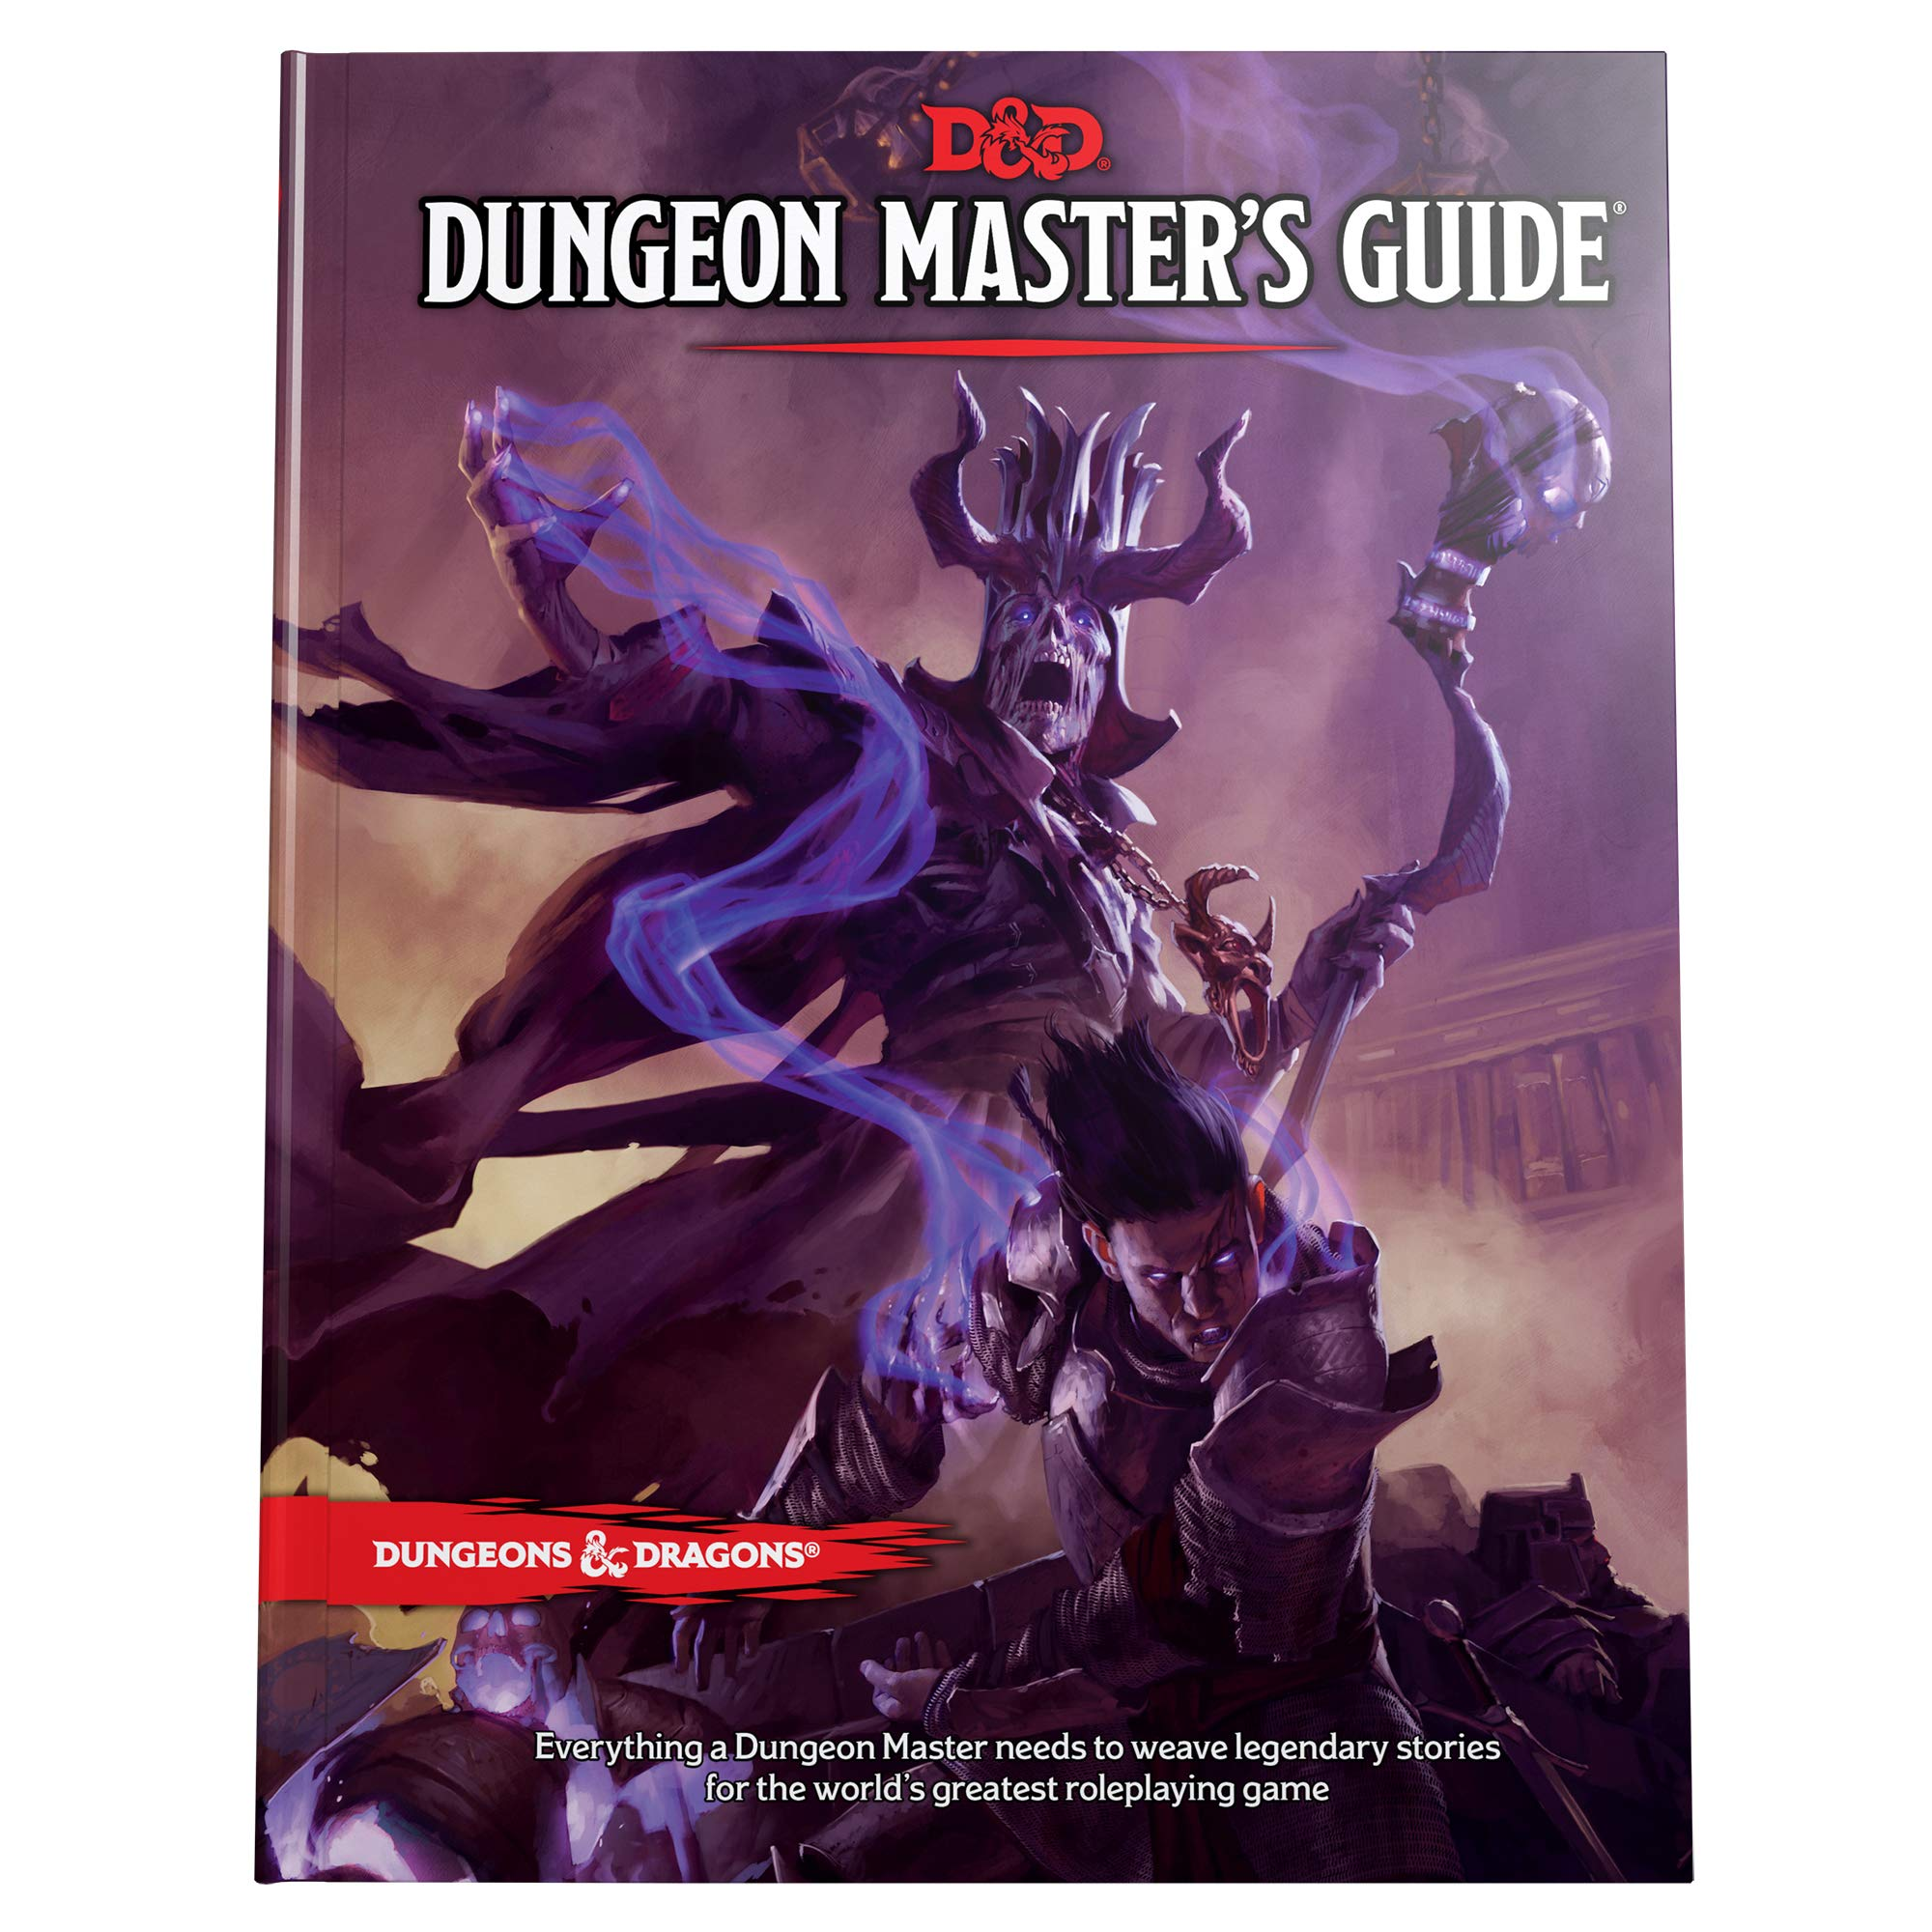 Dungeons & Dragons Dungeon Master's Guide (Core Rulebook 2 of 3 for the D&D  Roleplaying Game) (D&D Core Rulebook): Wizards RPG Team: 8601416371511: ...